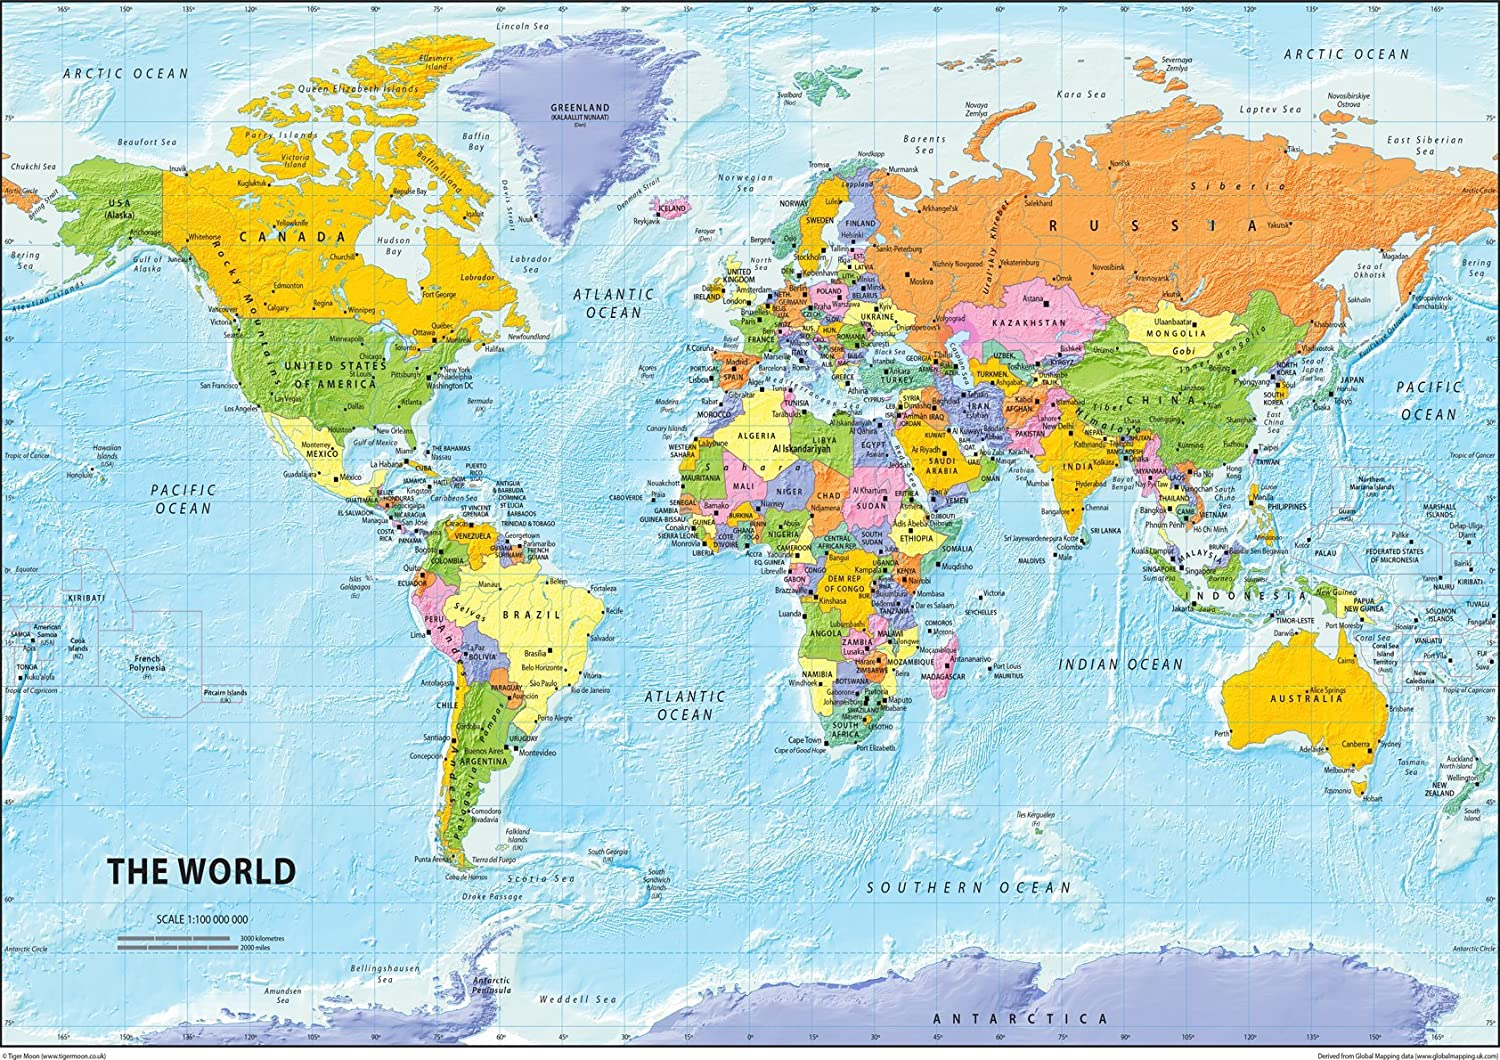 I Love Maps - The World Political Map - Paper Laminated - A2 Size 42 x 59.4  cm